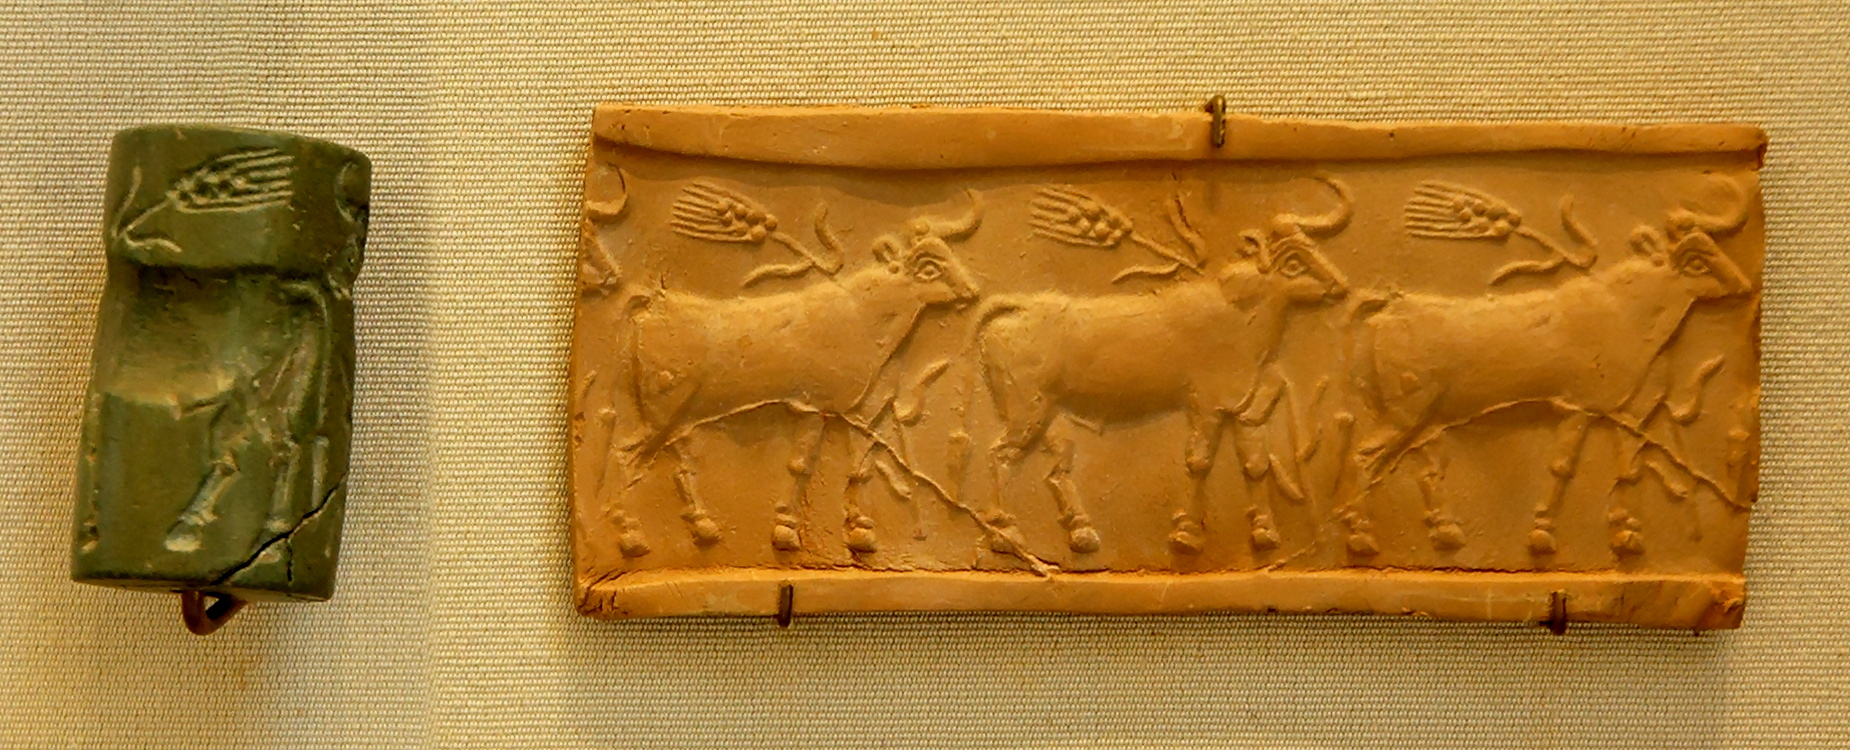 Cylinder seals and castanets | Three Star Owl - Functional ...